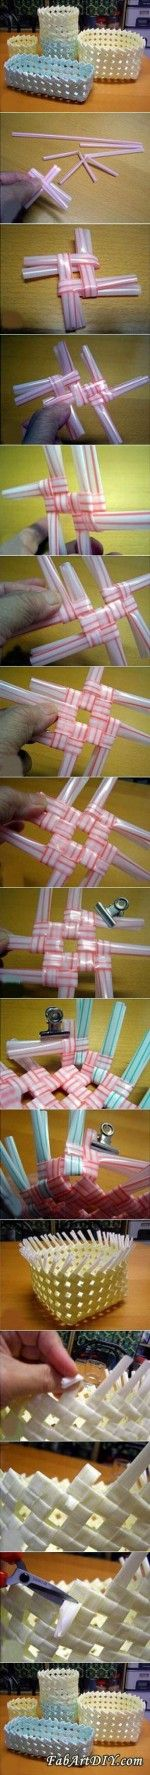 DIY Drinking Straw Basket